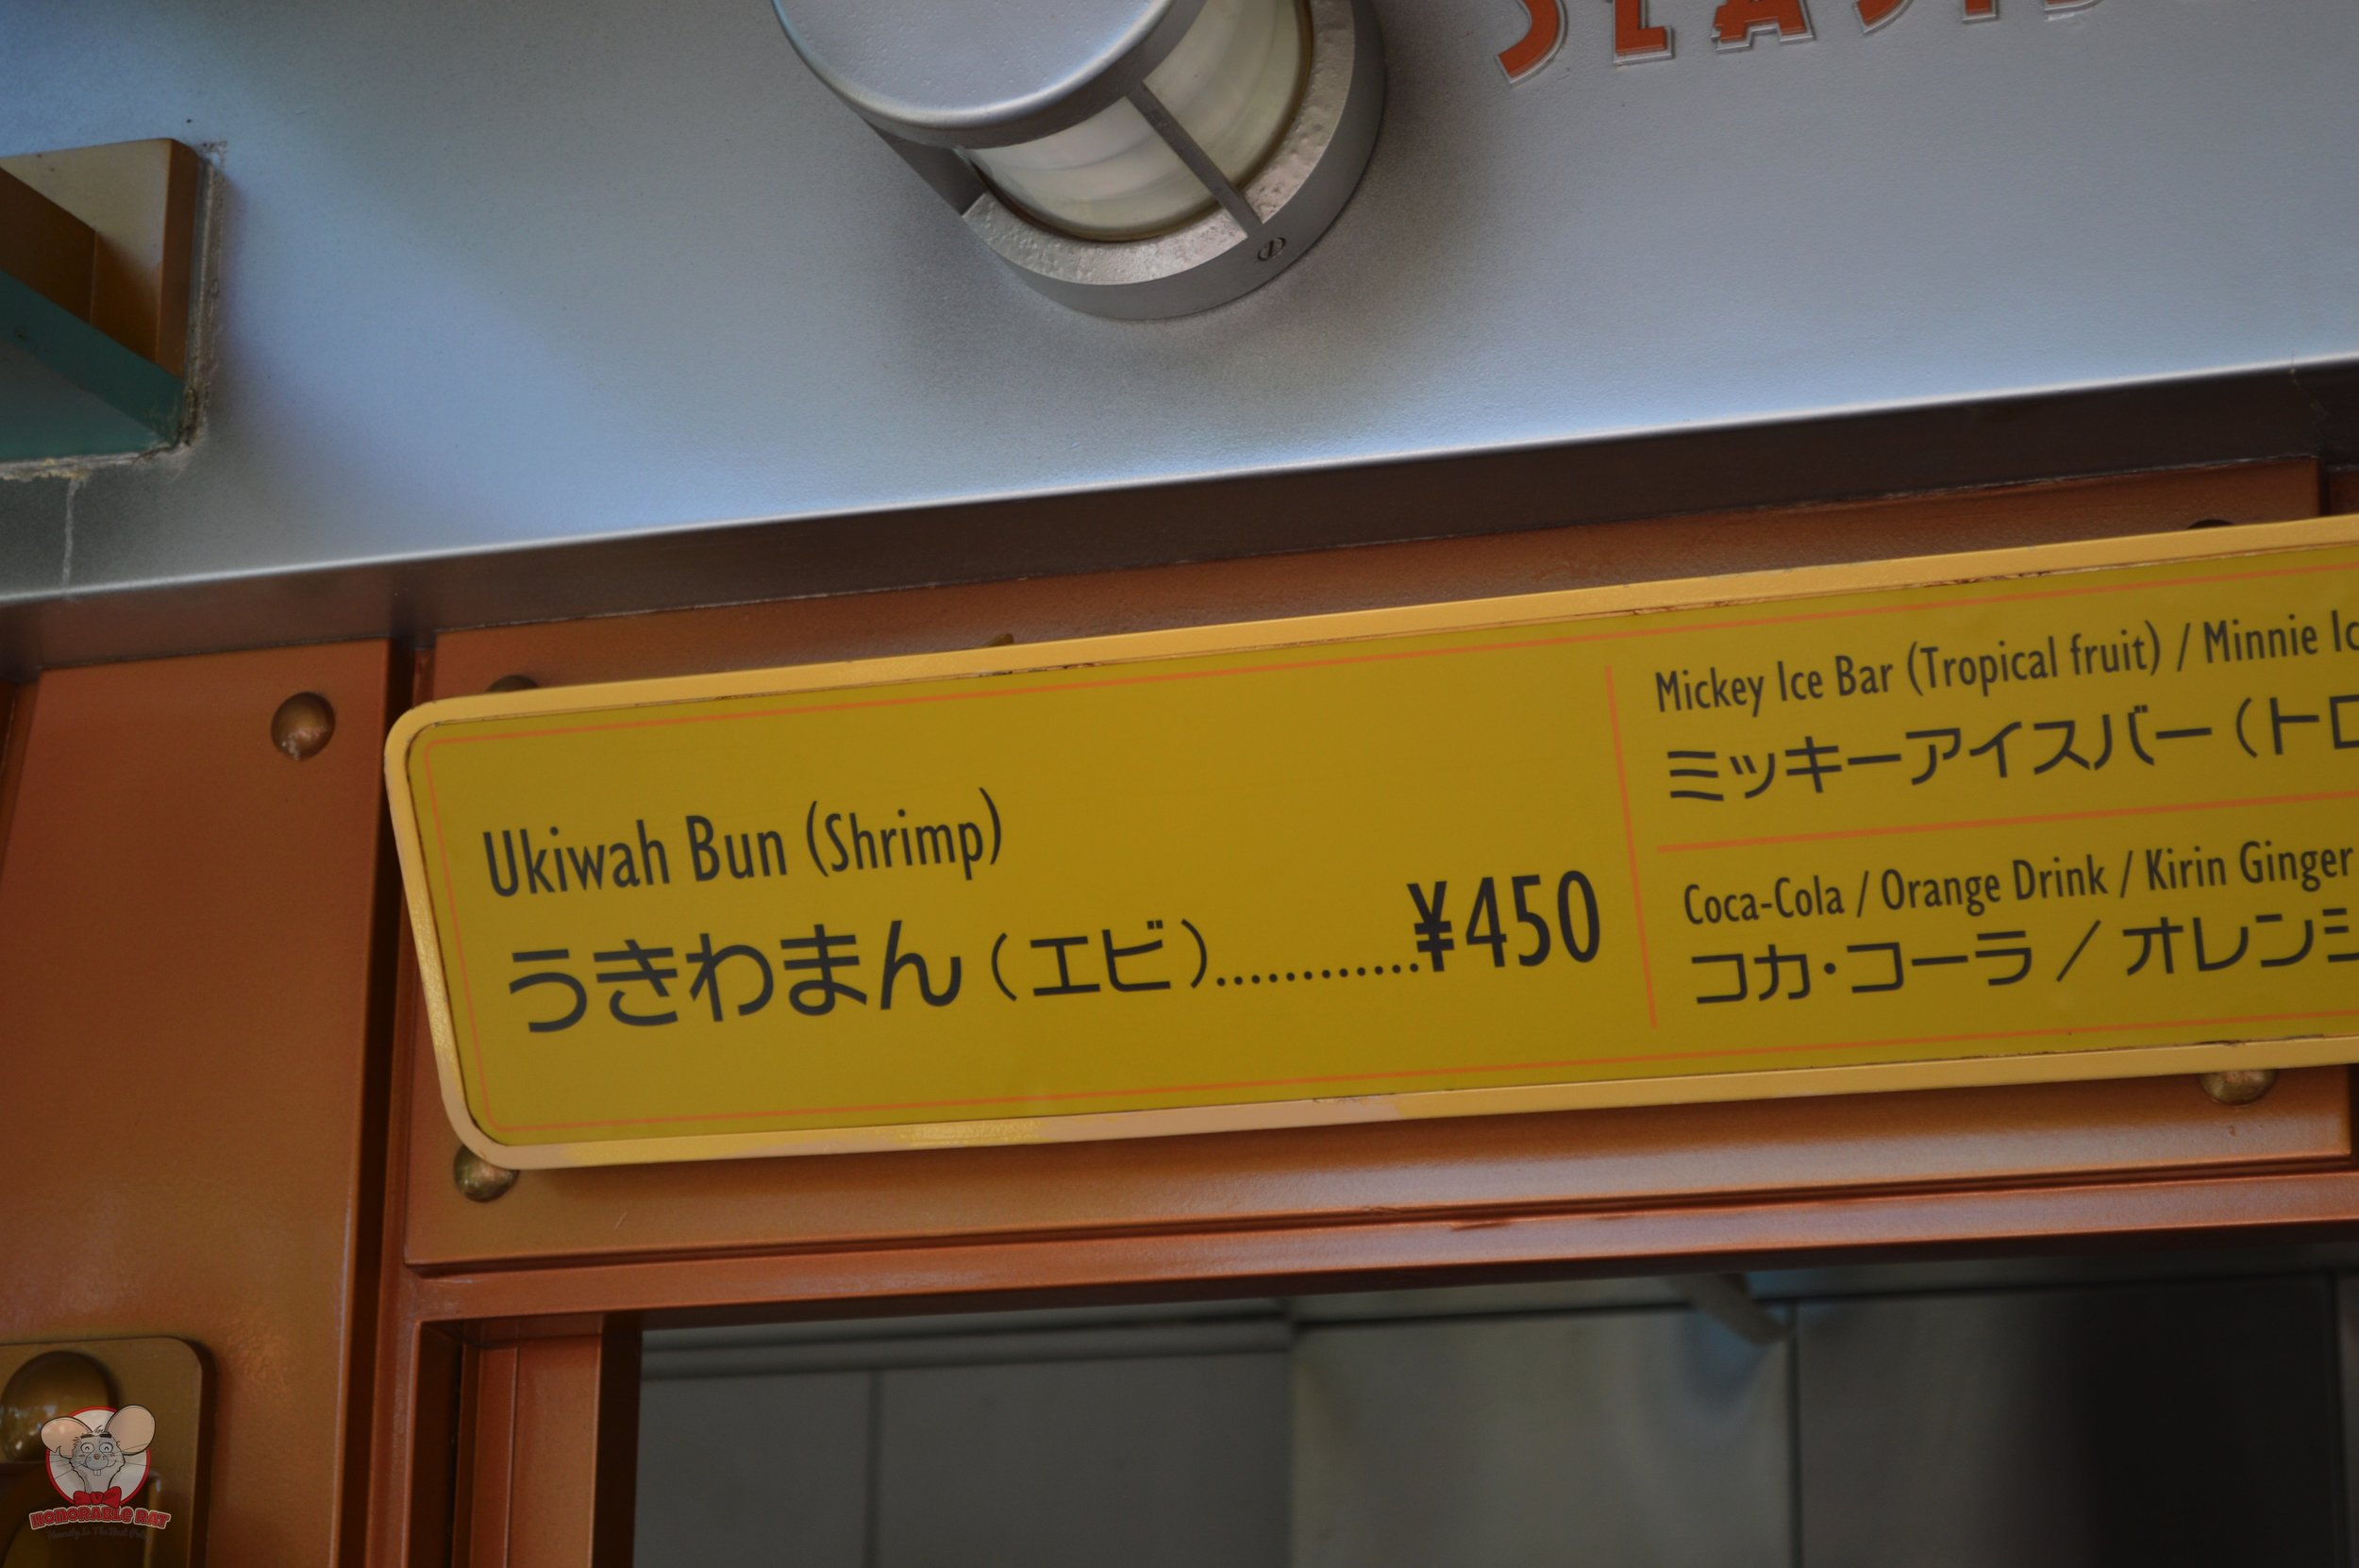 450 yen for an Ukiwah Bun (Shrimp)